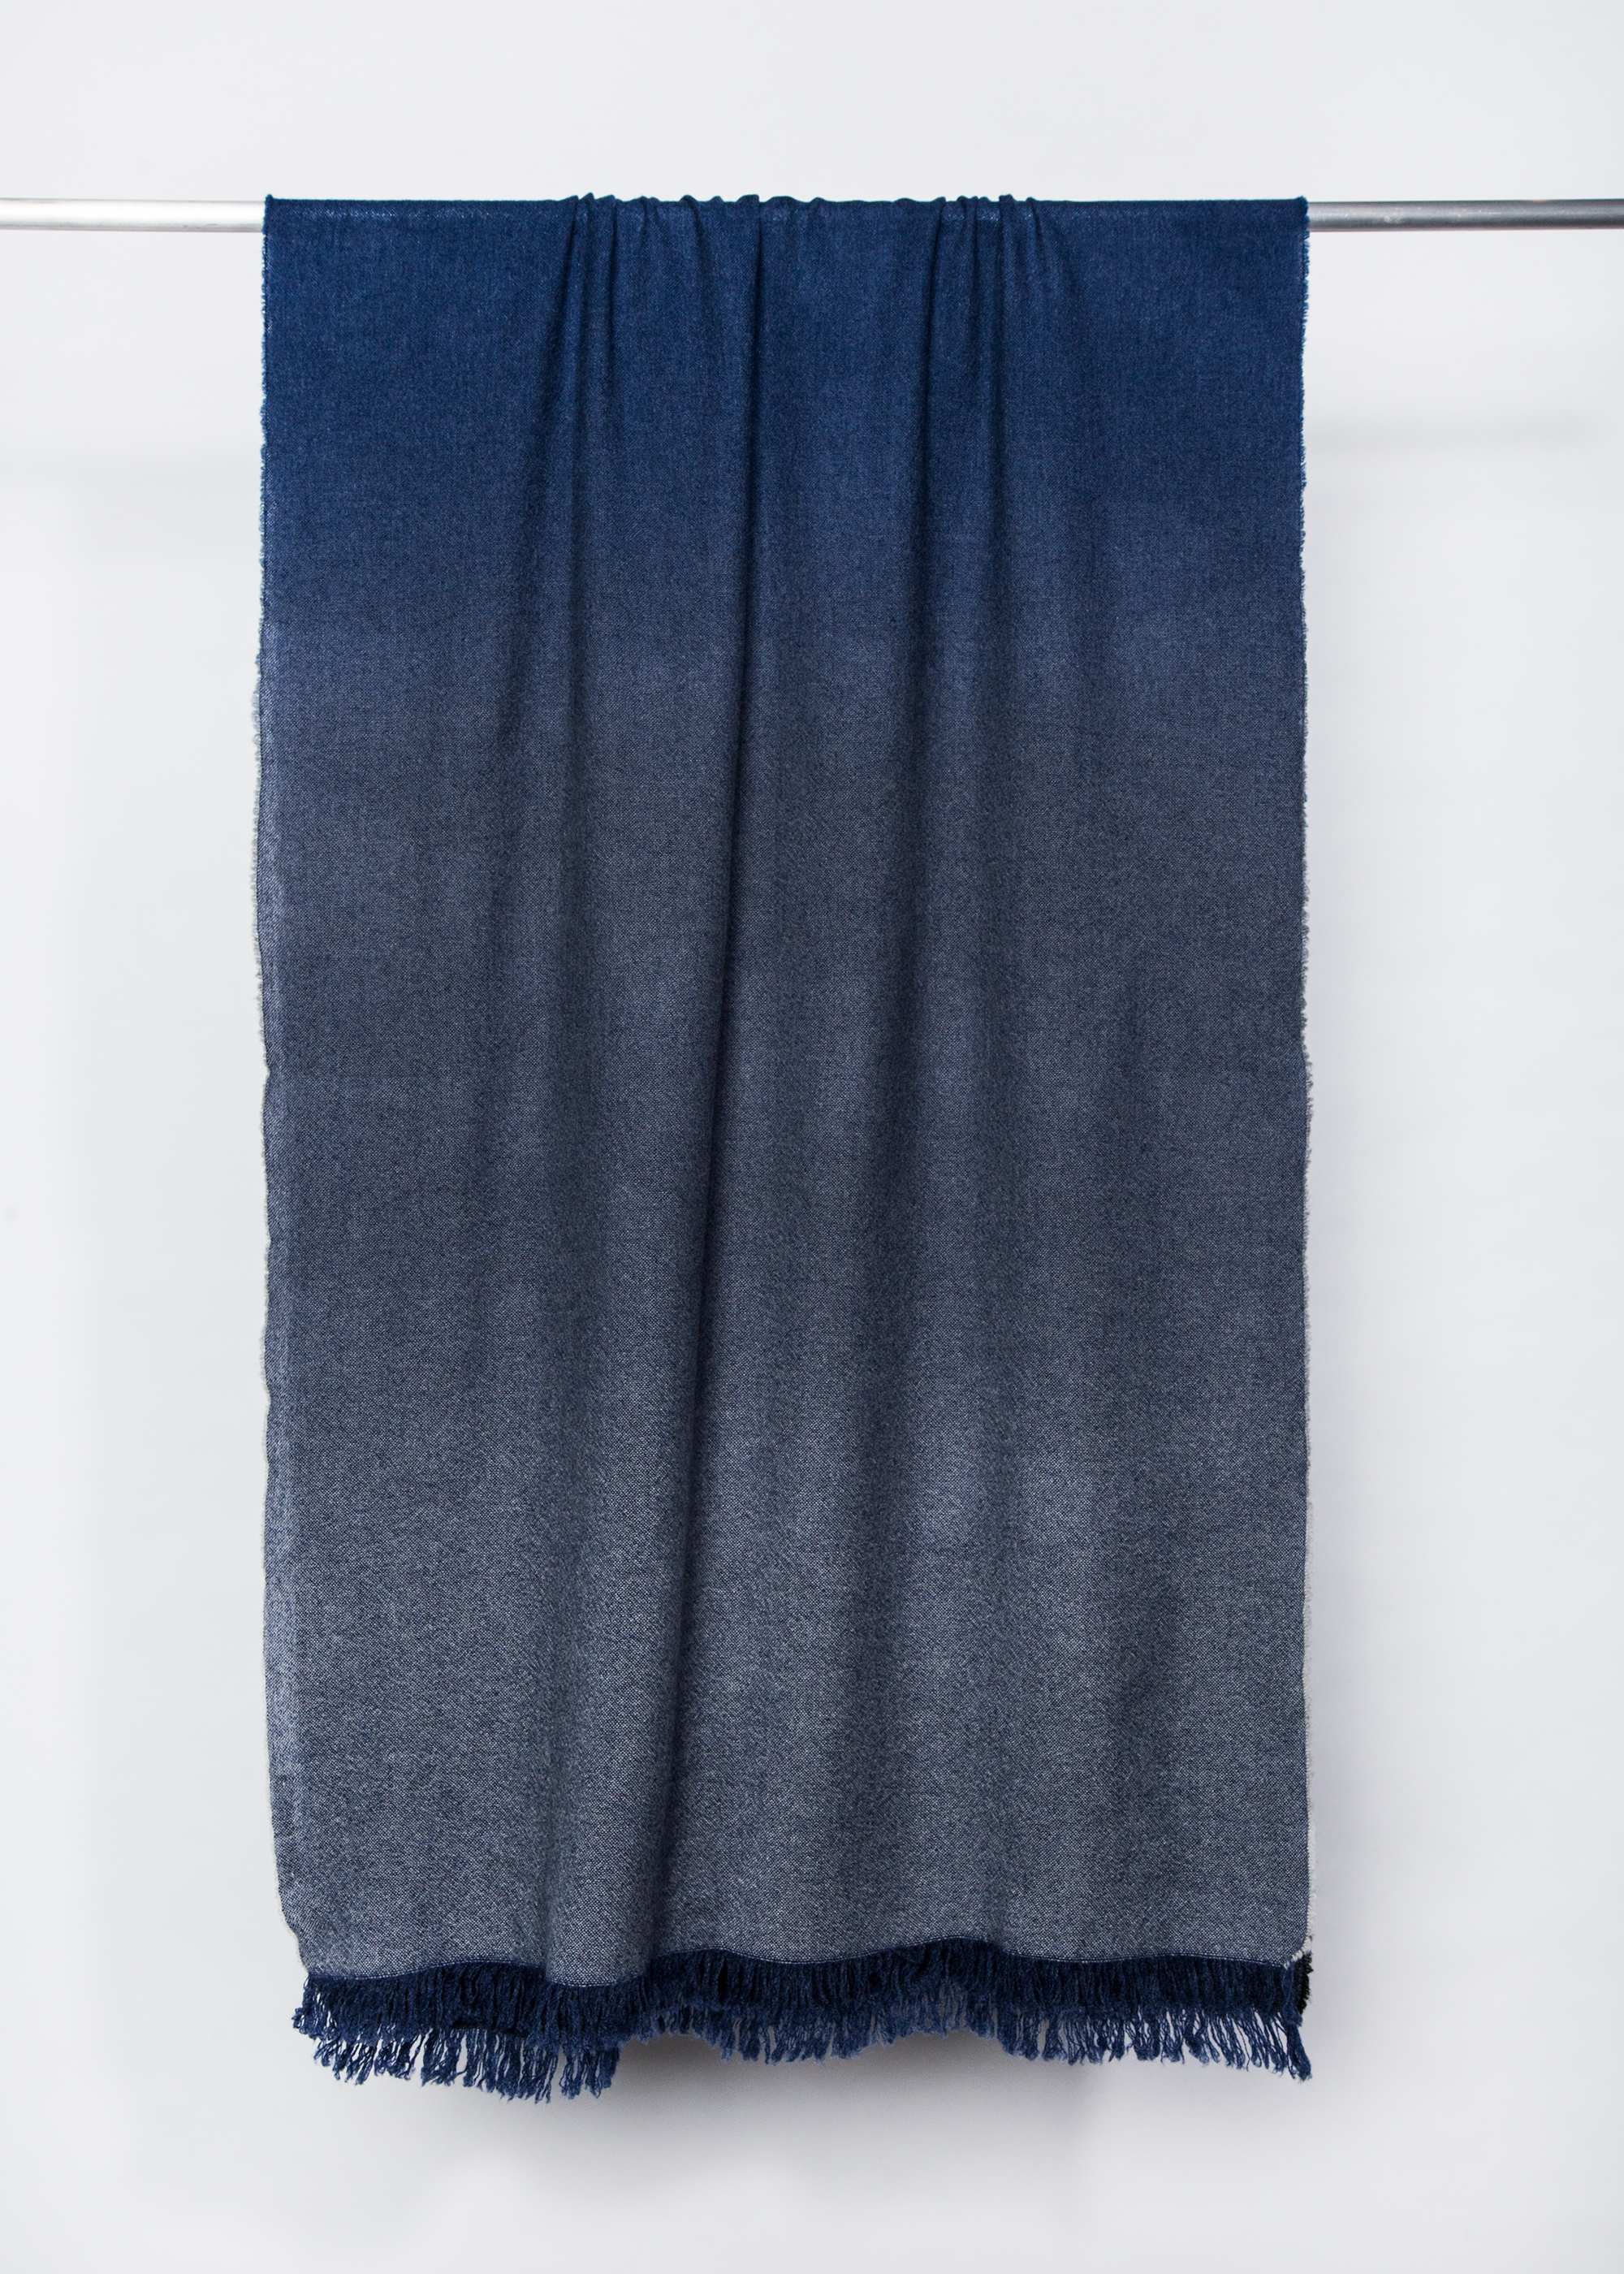 scarf-begg-and-co-blue-ombre-1.jpg